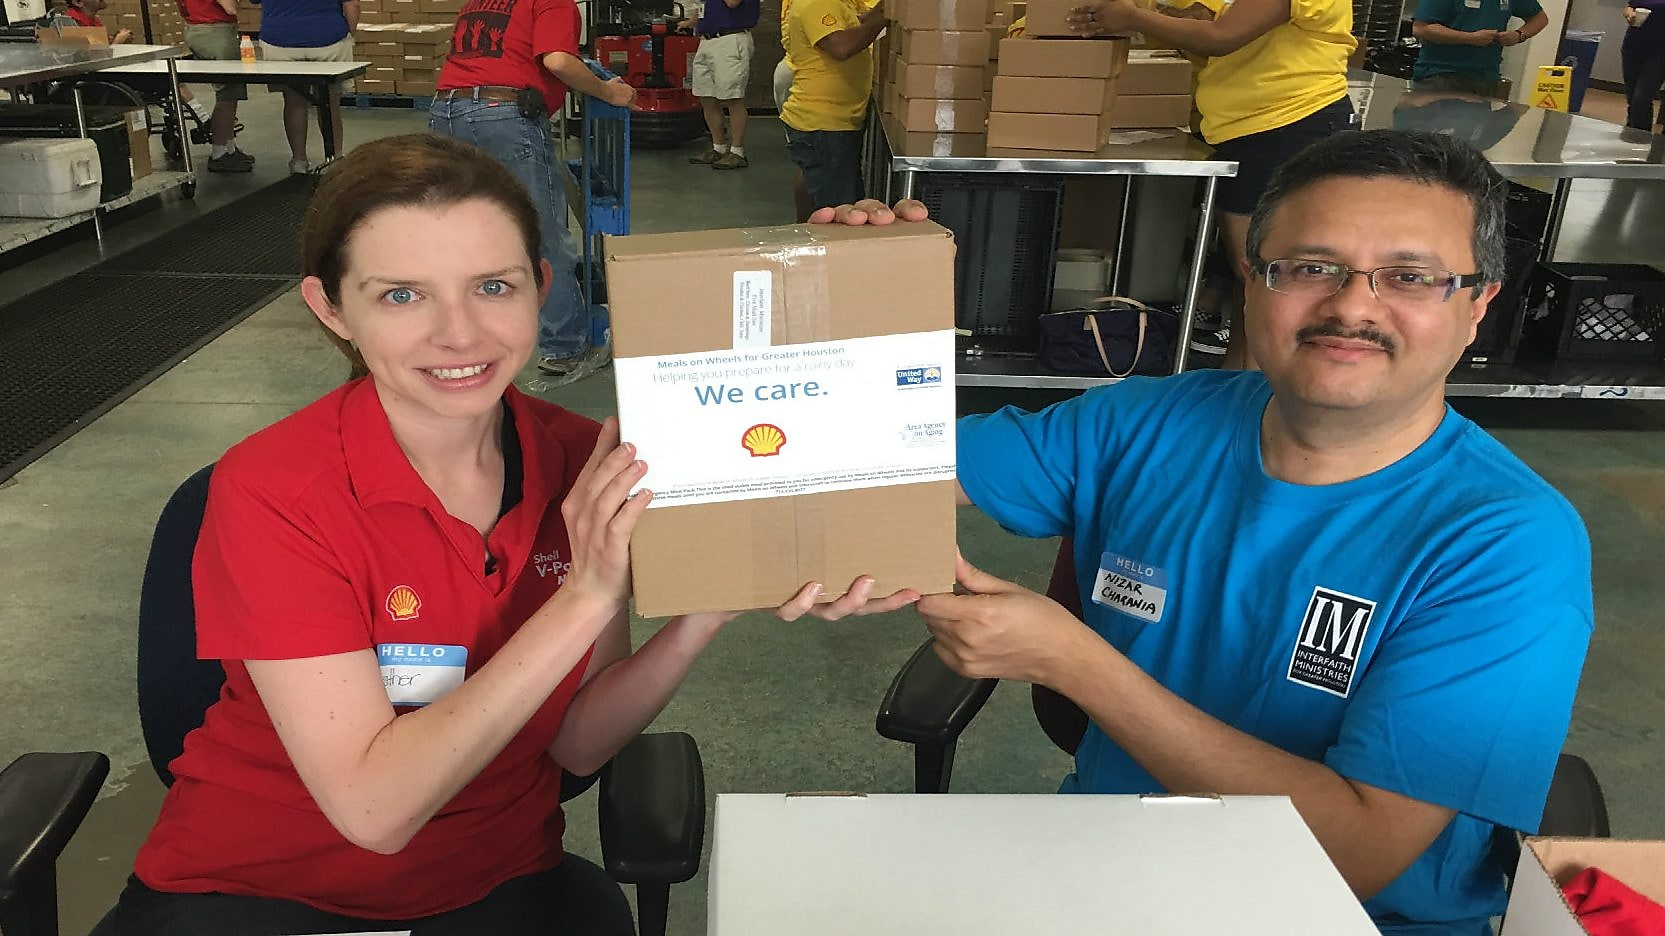 Shell fuels meals on wheels in Houston to fight hunger